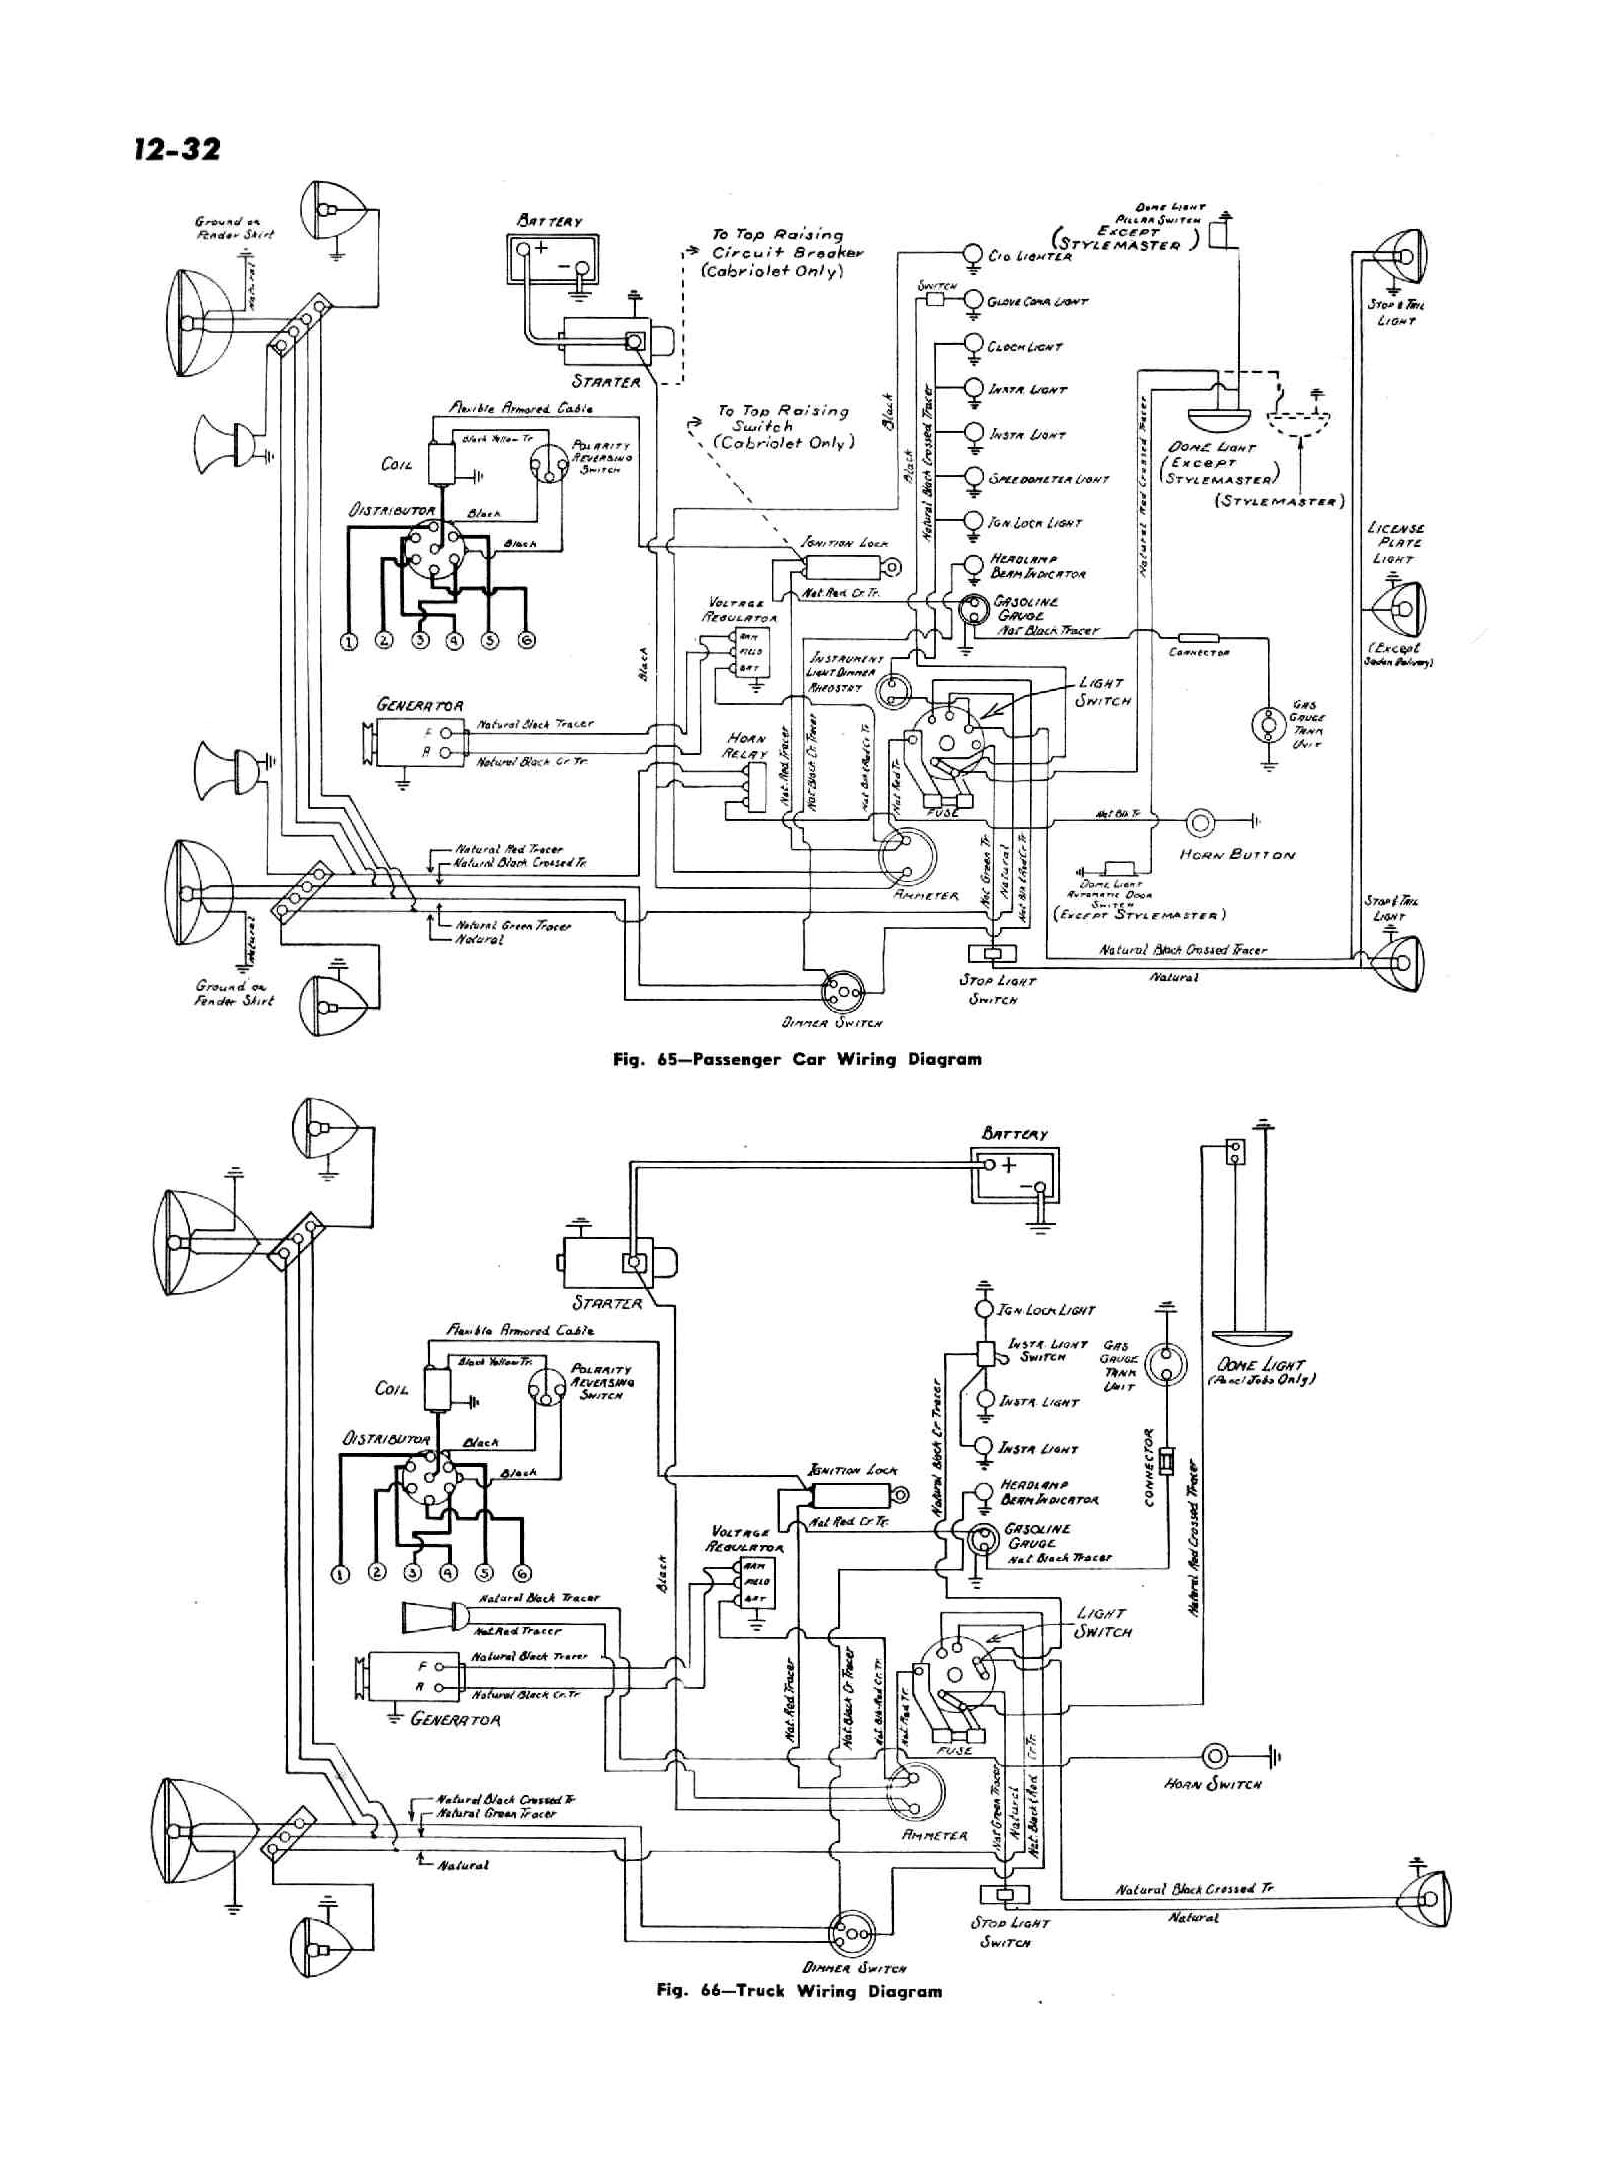 4247csm1232 chevy wiring diagrams chevy radio wiring \u2022 wiring diagrams j 1984 chevy truck electrical wiring diagram at edmiracle.co